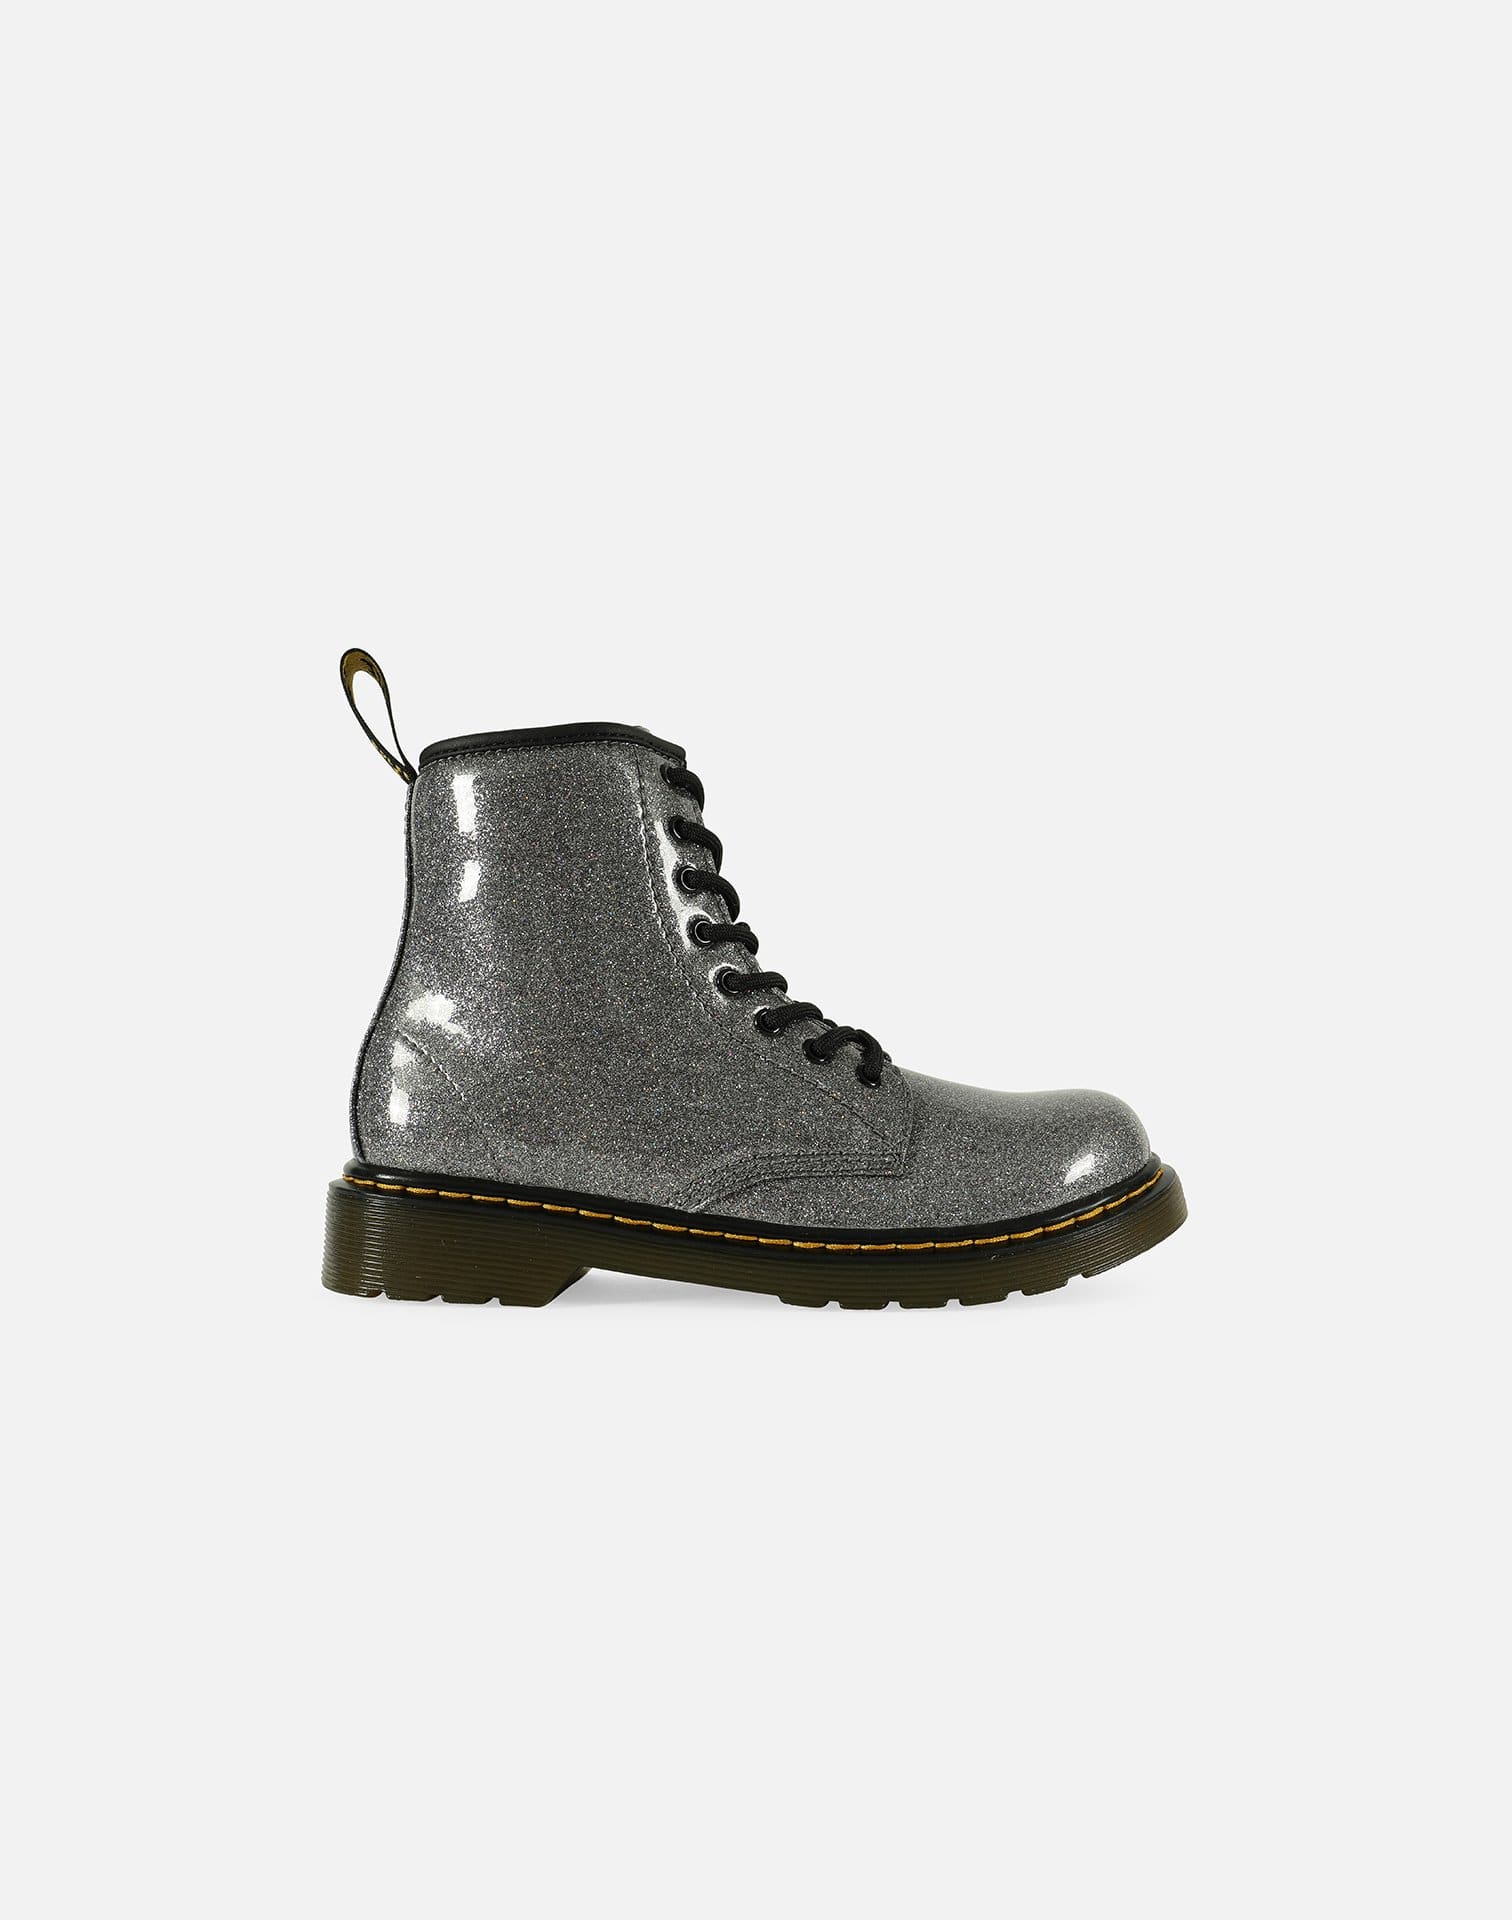 Dr. Martens Delaney Glitter Patent Leather Pre-School